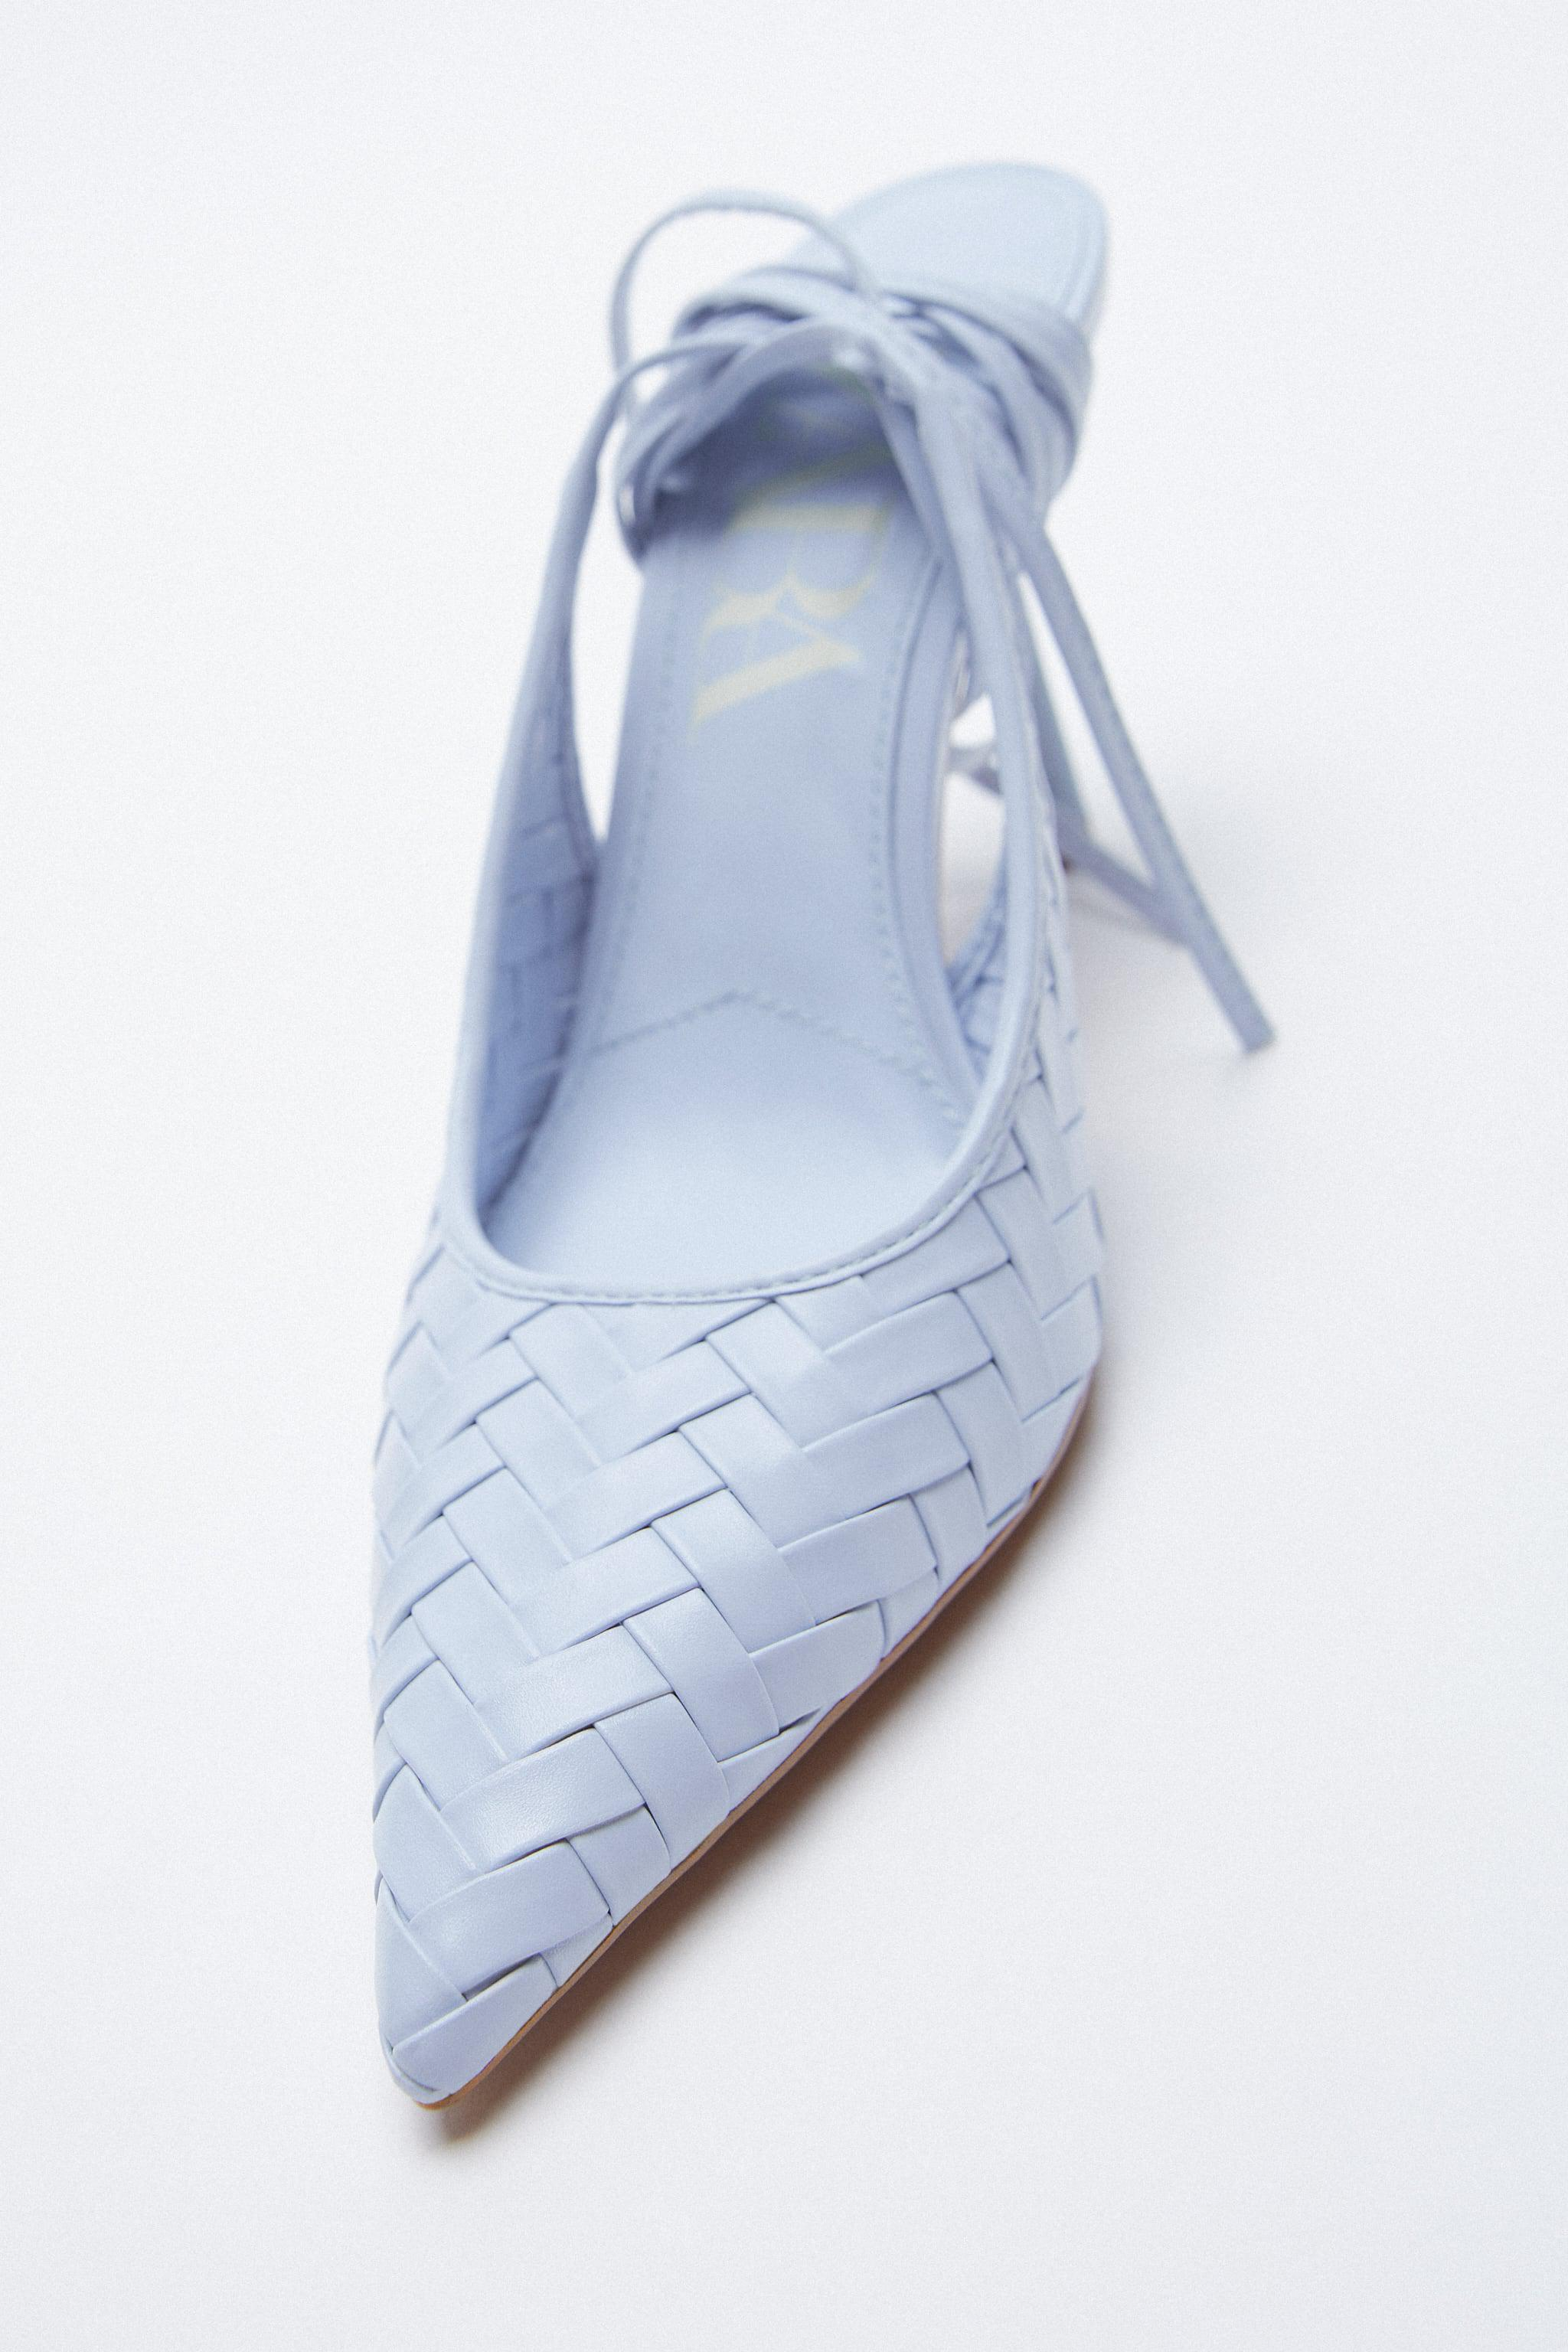 WOVEN HEELS WITH ANKLE STRAP 4